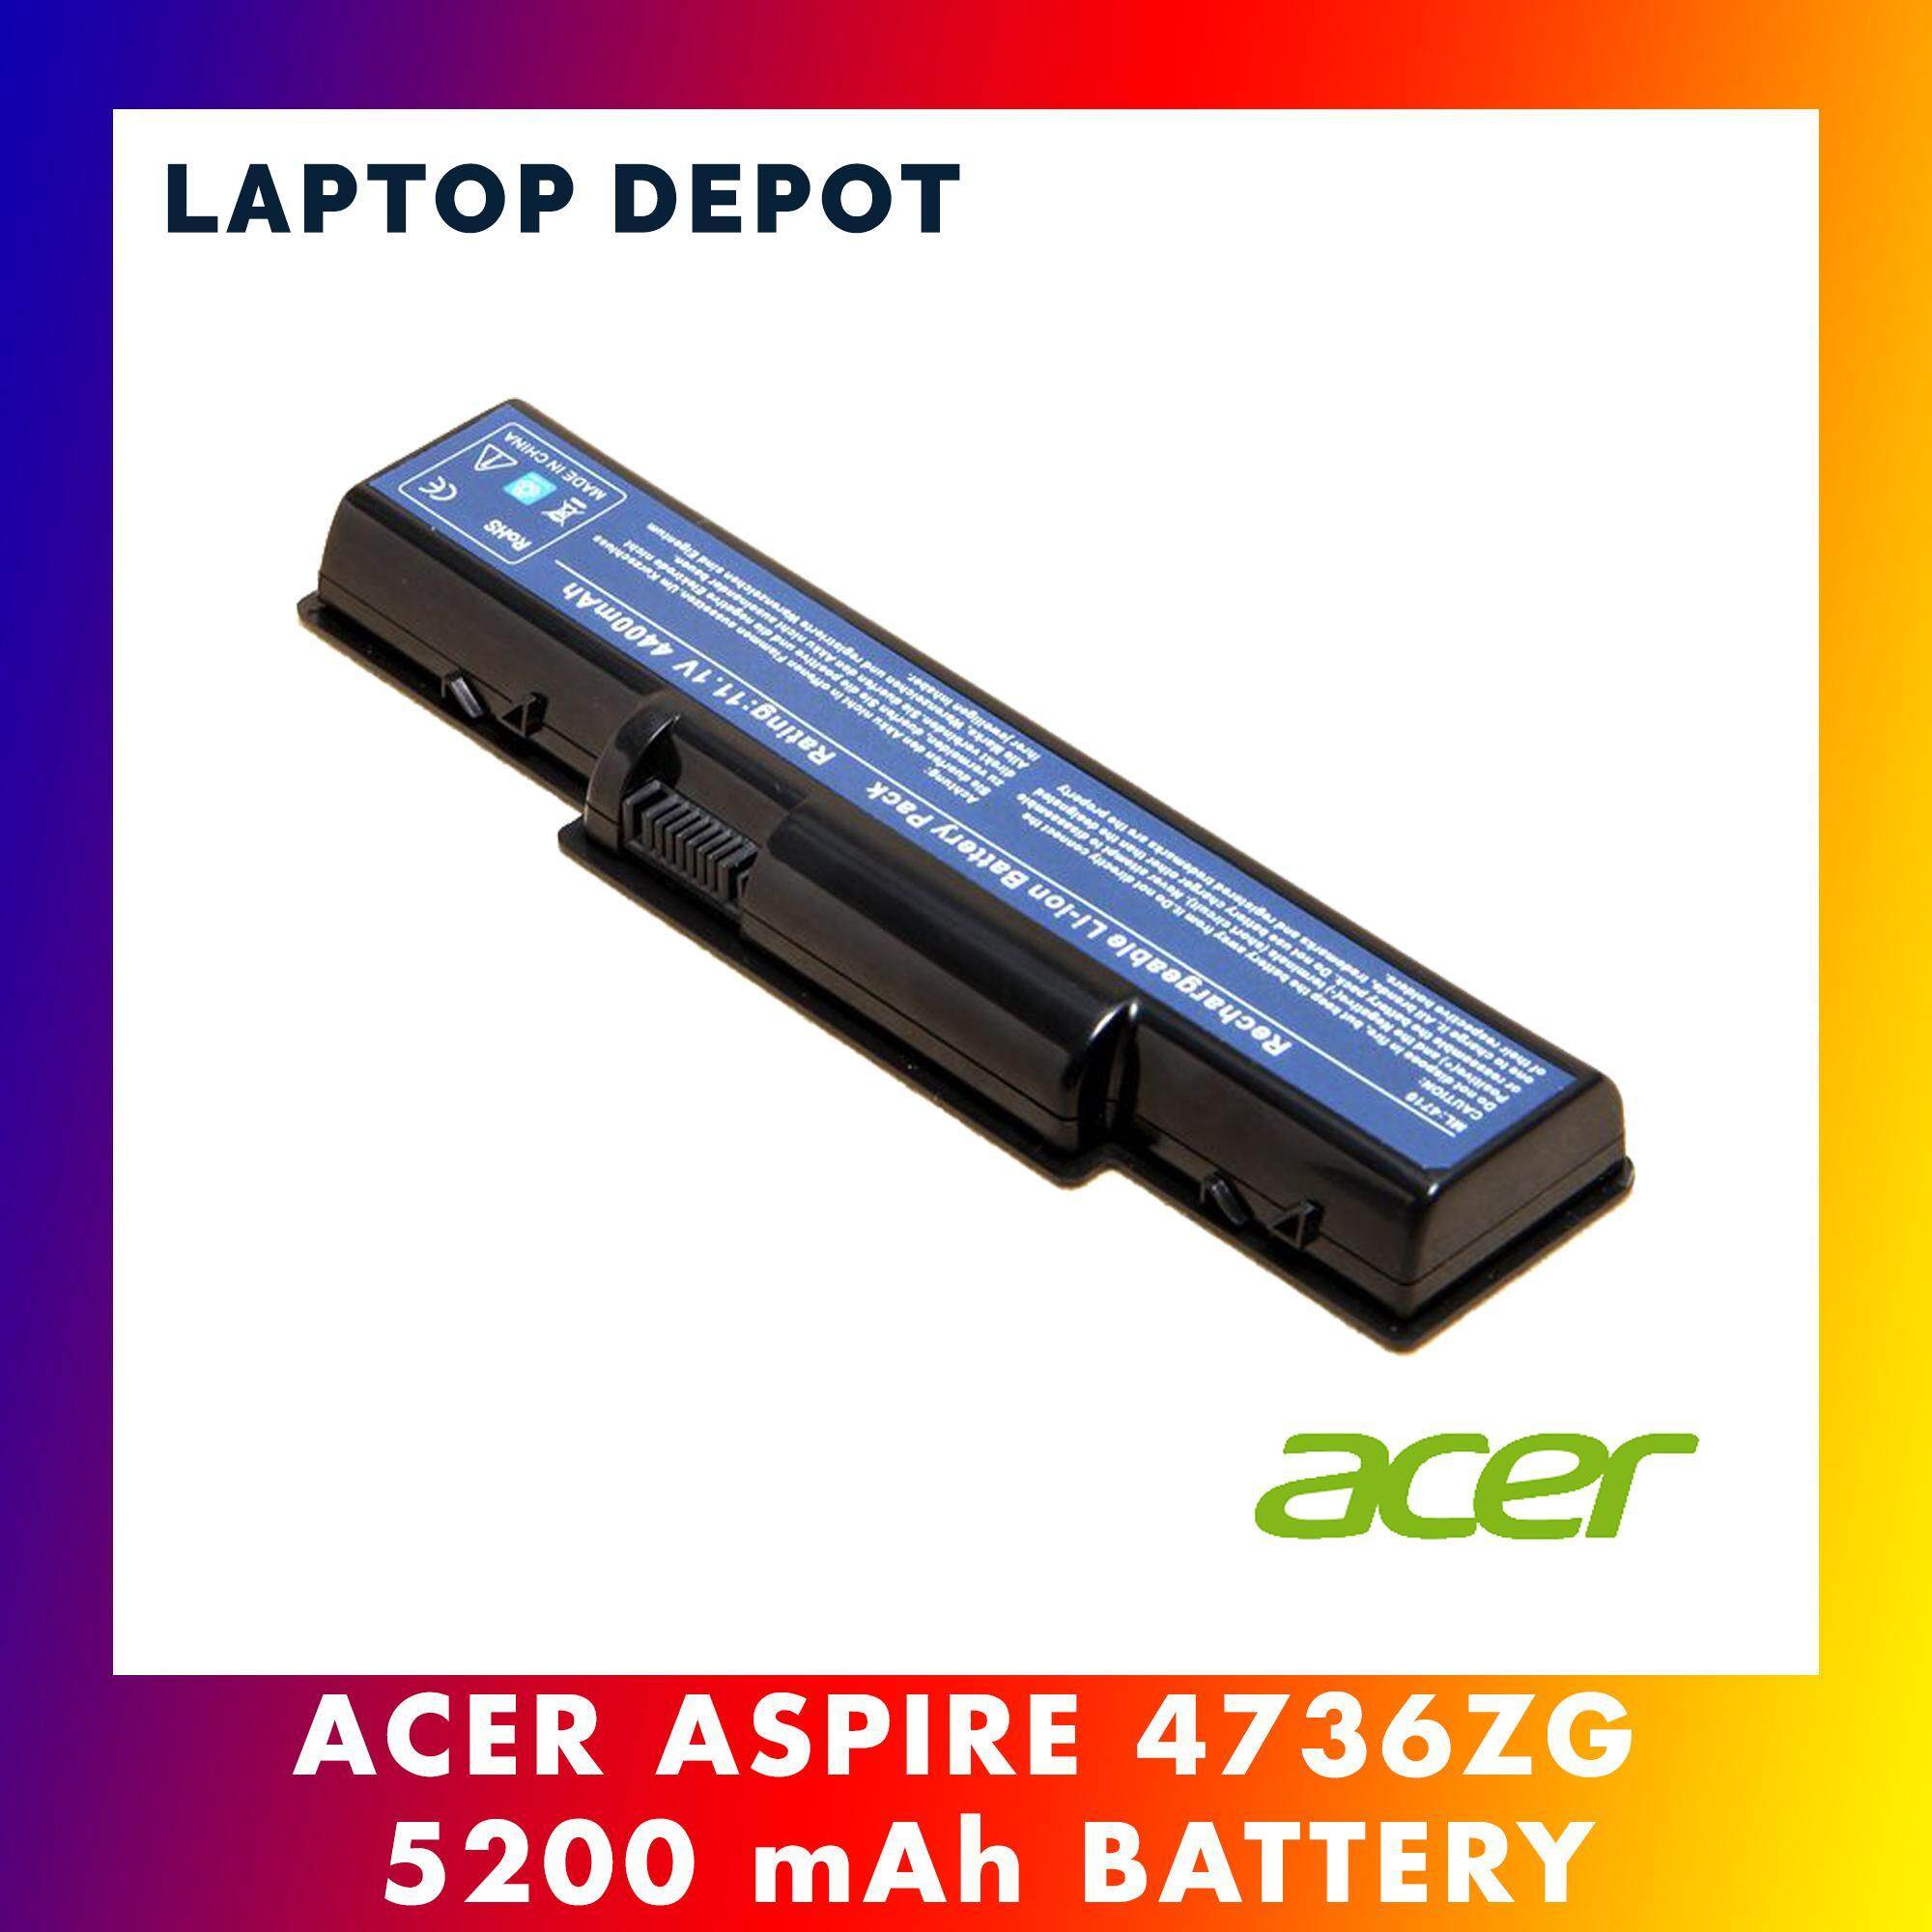 (1 year warranty)Acer Aspire 4710 4730ZG 4736ZG 4735 4735Z 4736 4736G 4736Z battery Malaysia